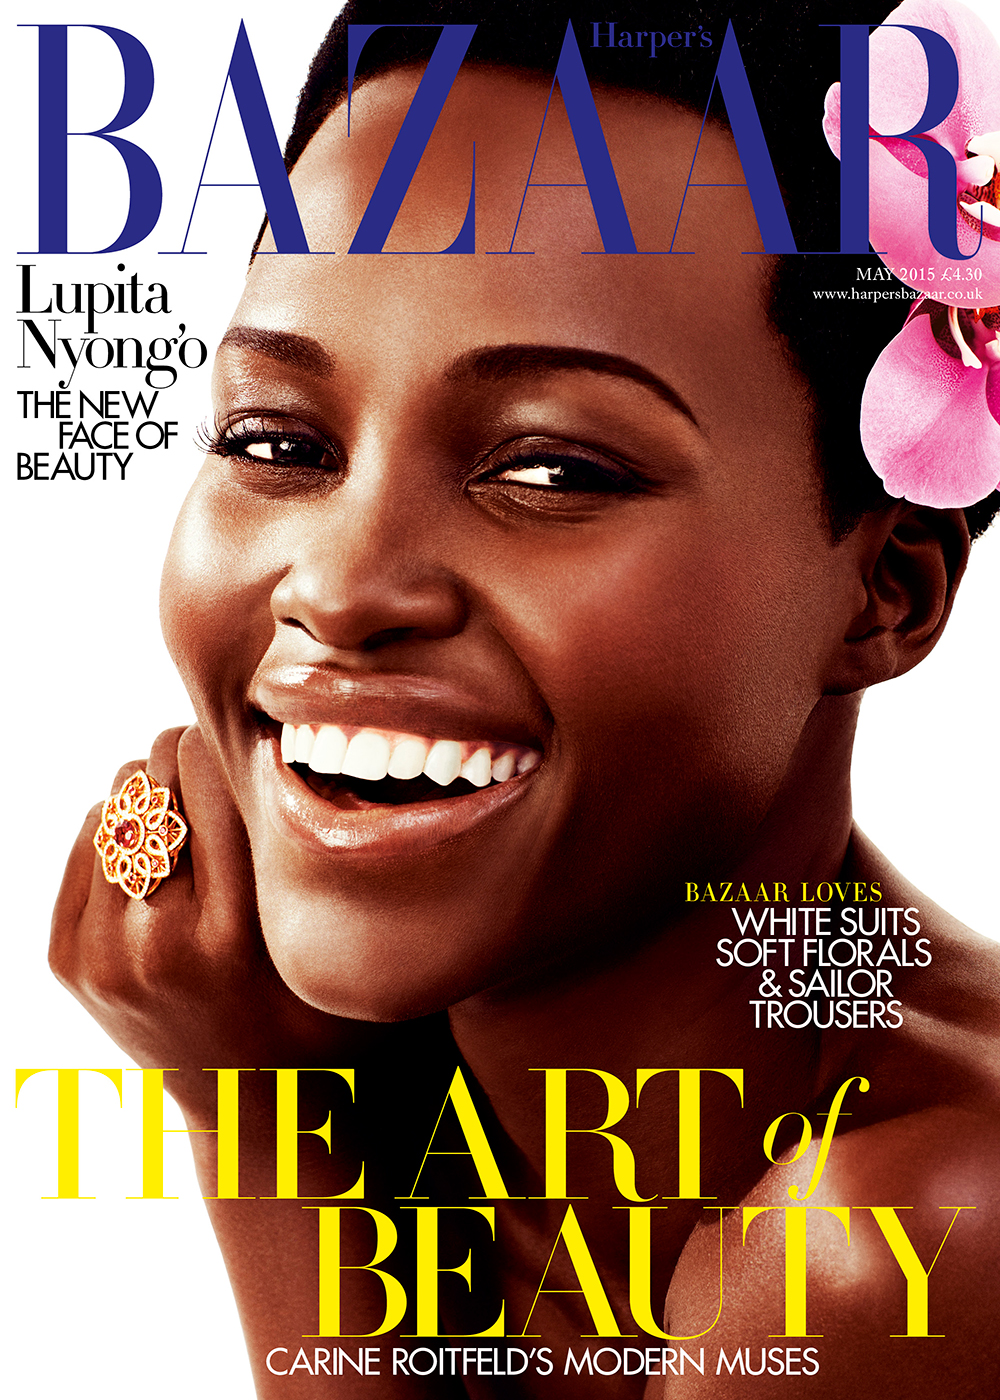 Flawless-Harpers- Bazaar-UK-Proclaims Lupita-Nyongo-As- The-New-Face-Of- Beauty-In-May-2015- Issue